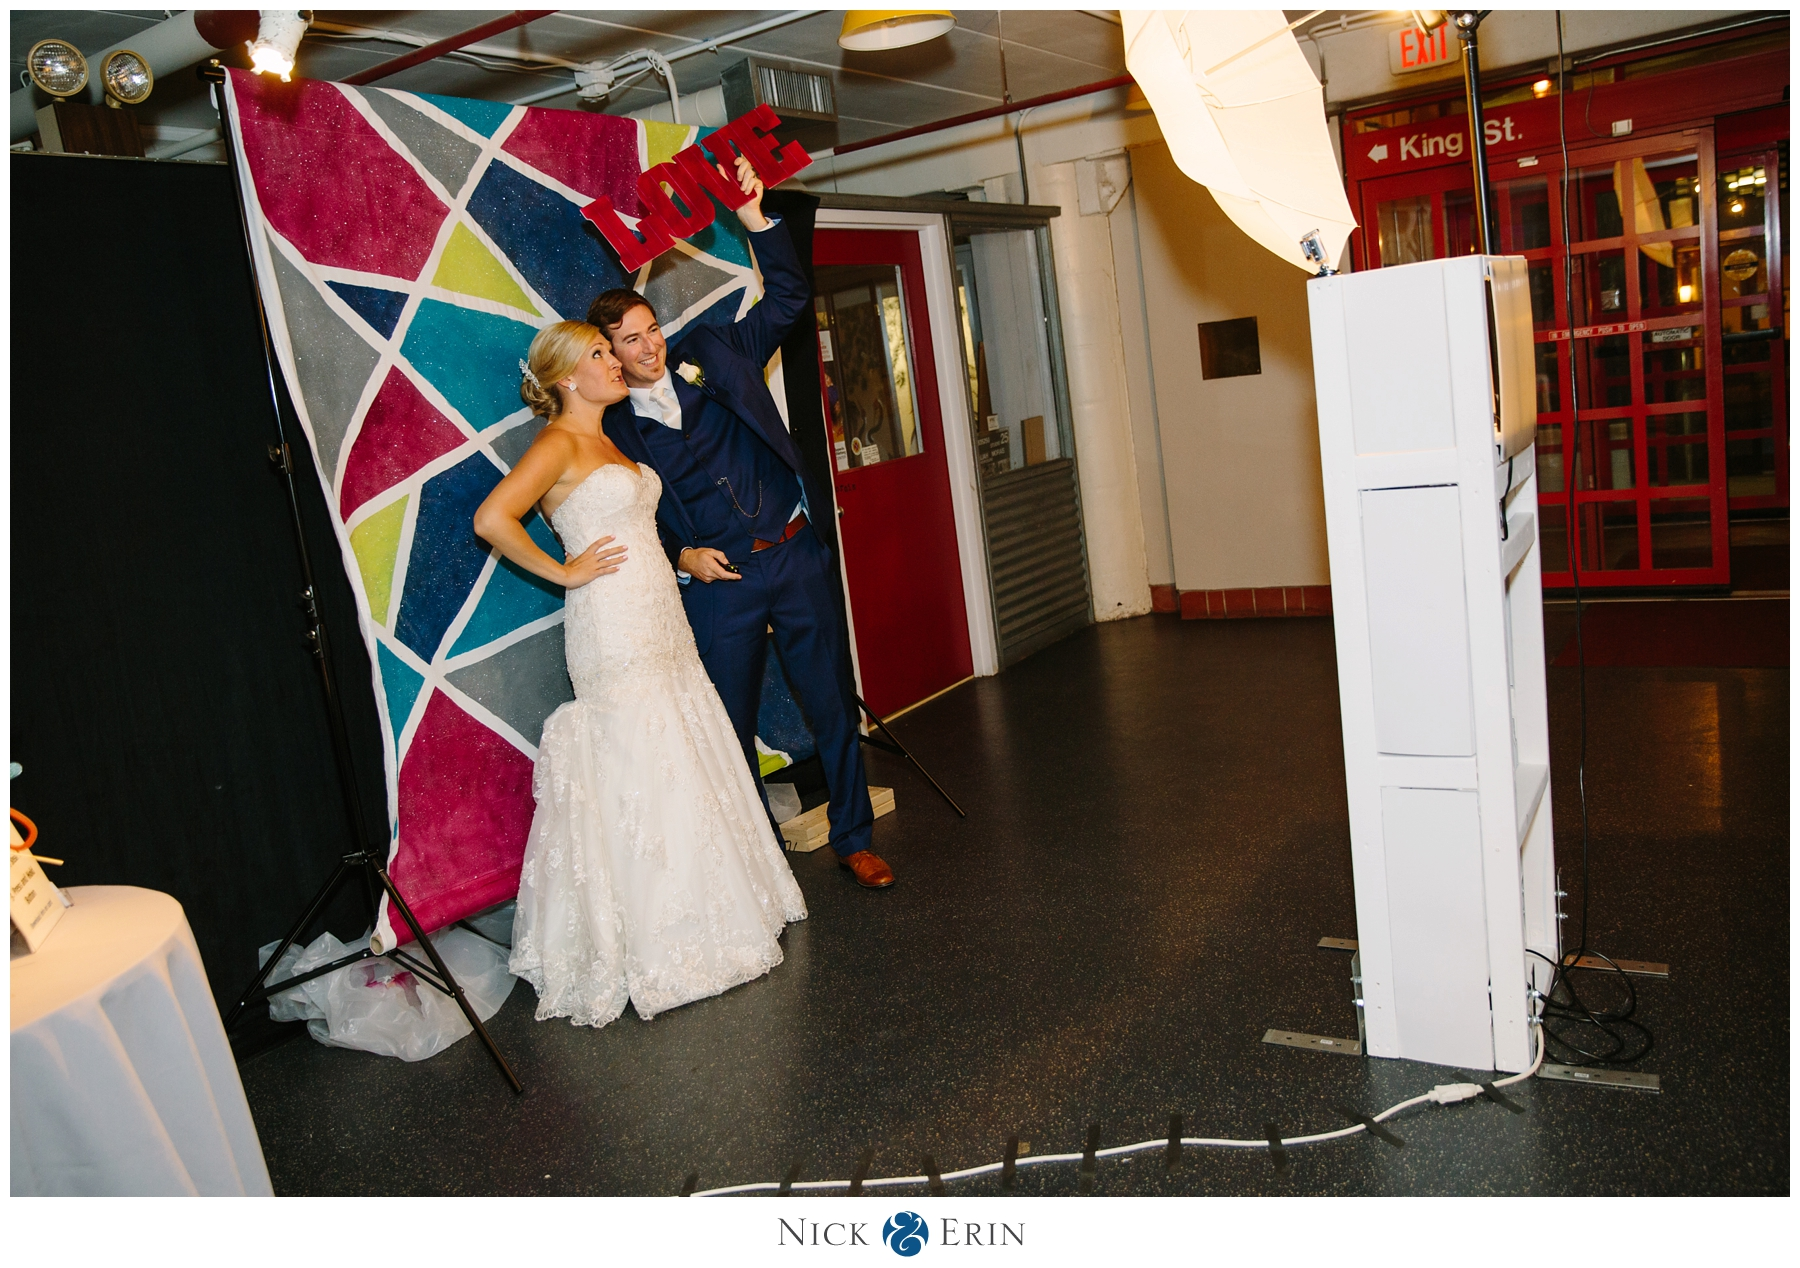 Donner_Photography_Torpedo Factory Wedding_Courtney and Scott_0053